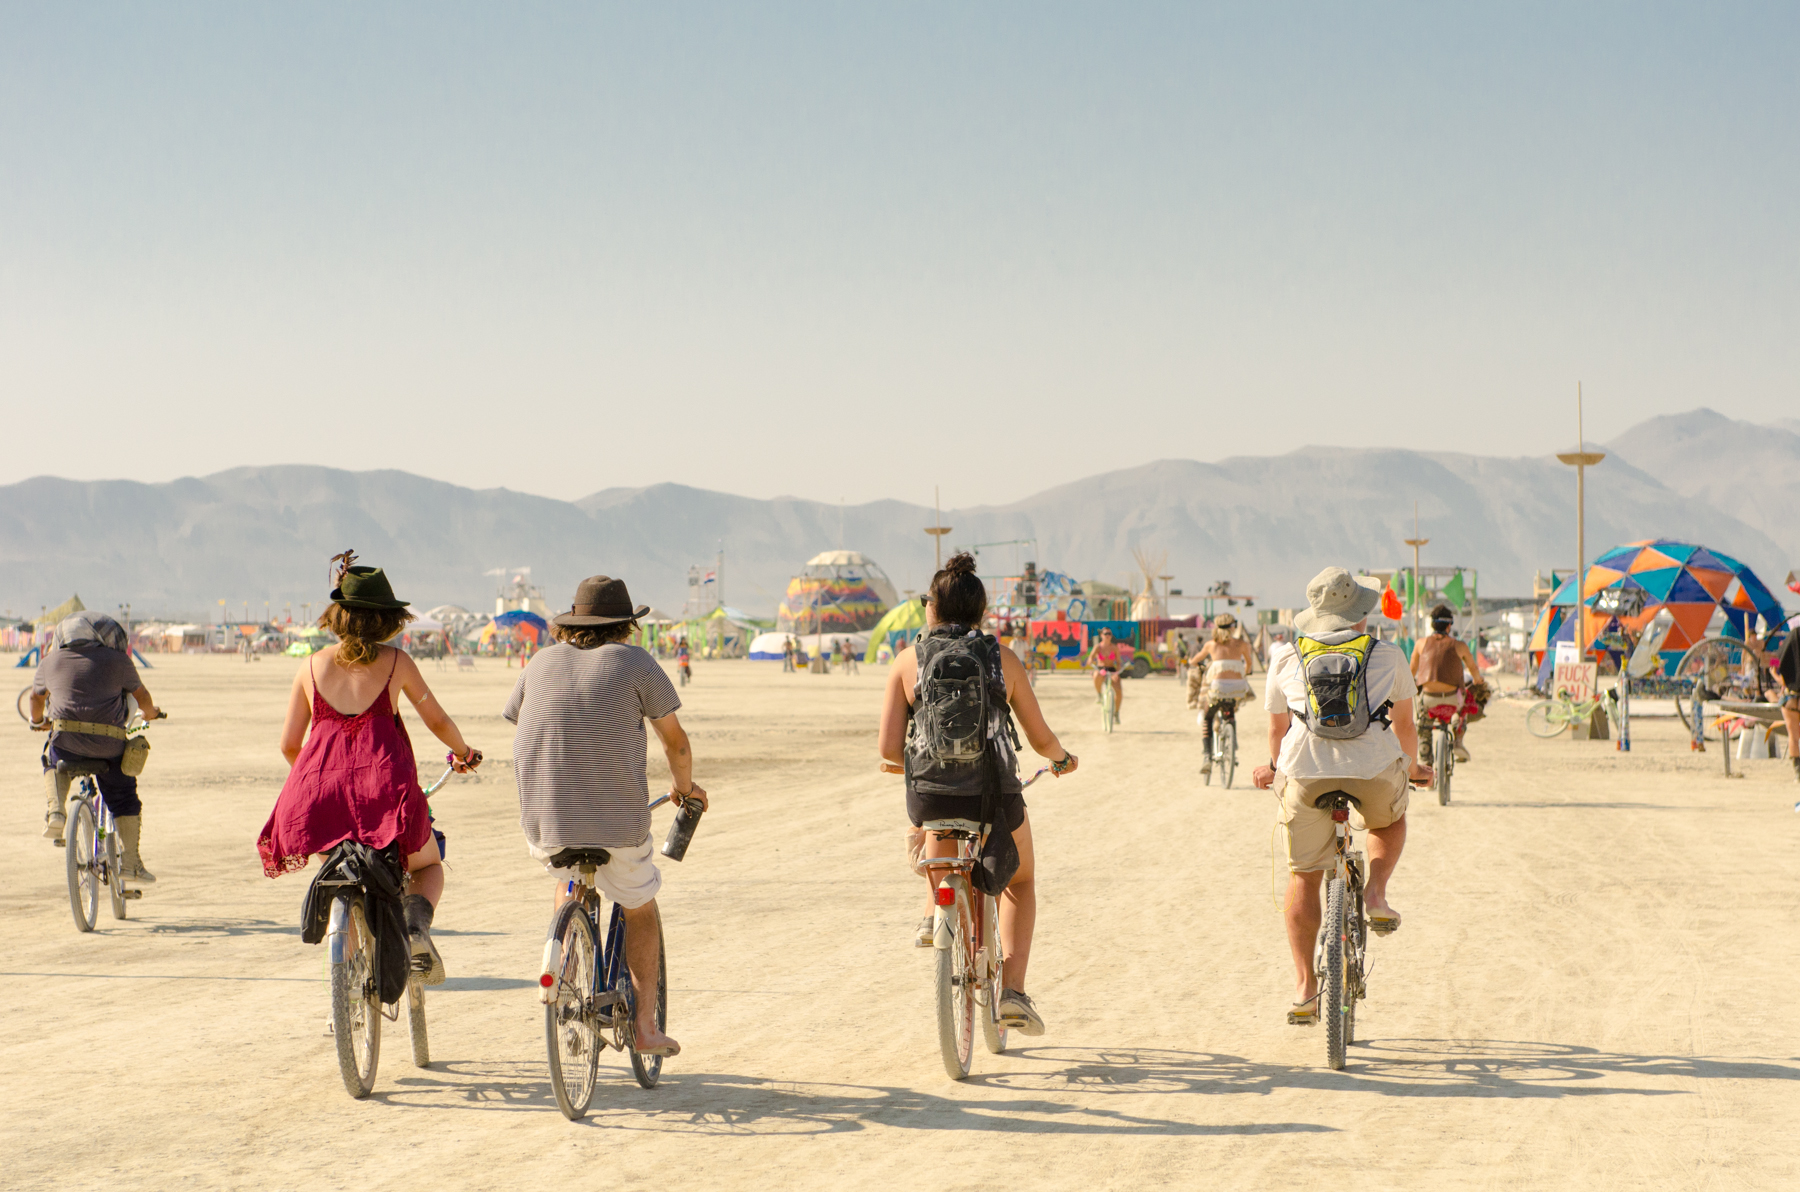 I was glad I bought a bicycle to take to Burning Man - it would take you hours to walk around the city without wheels.